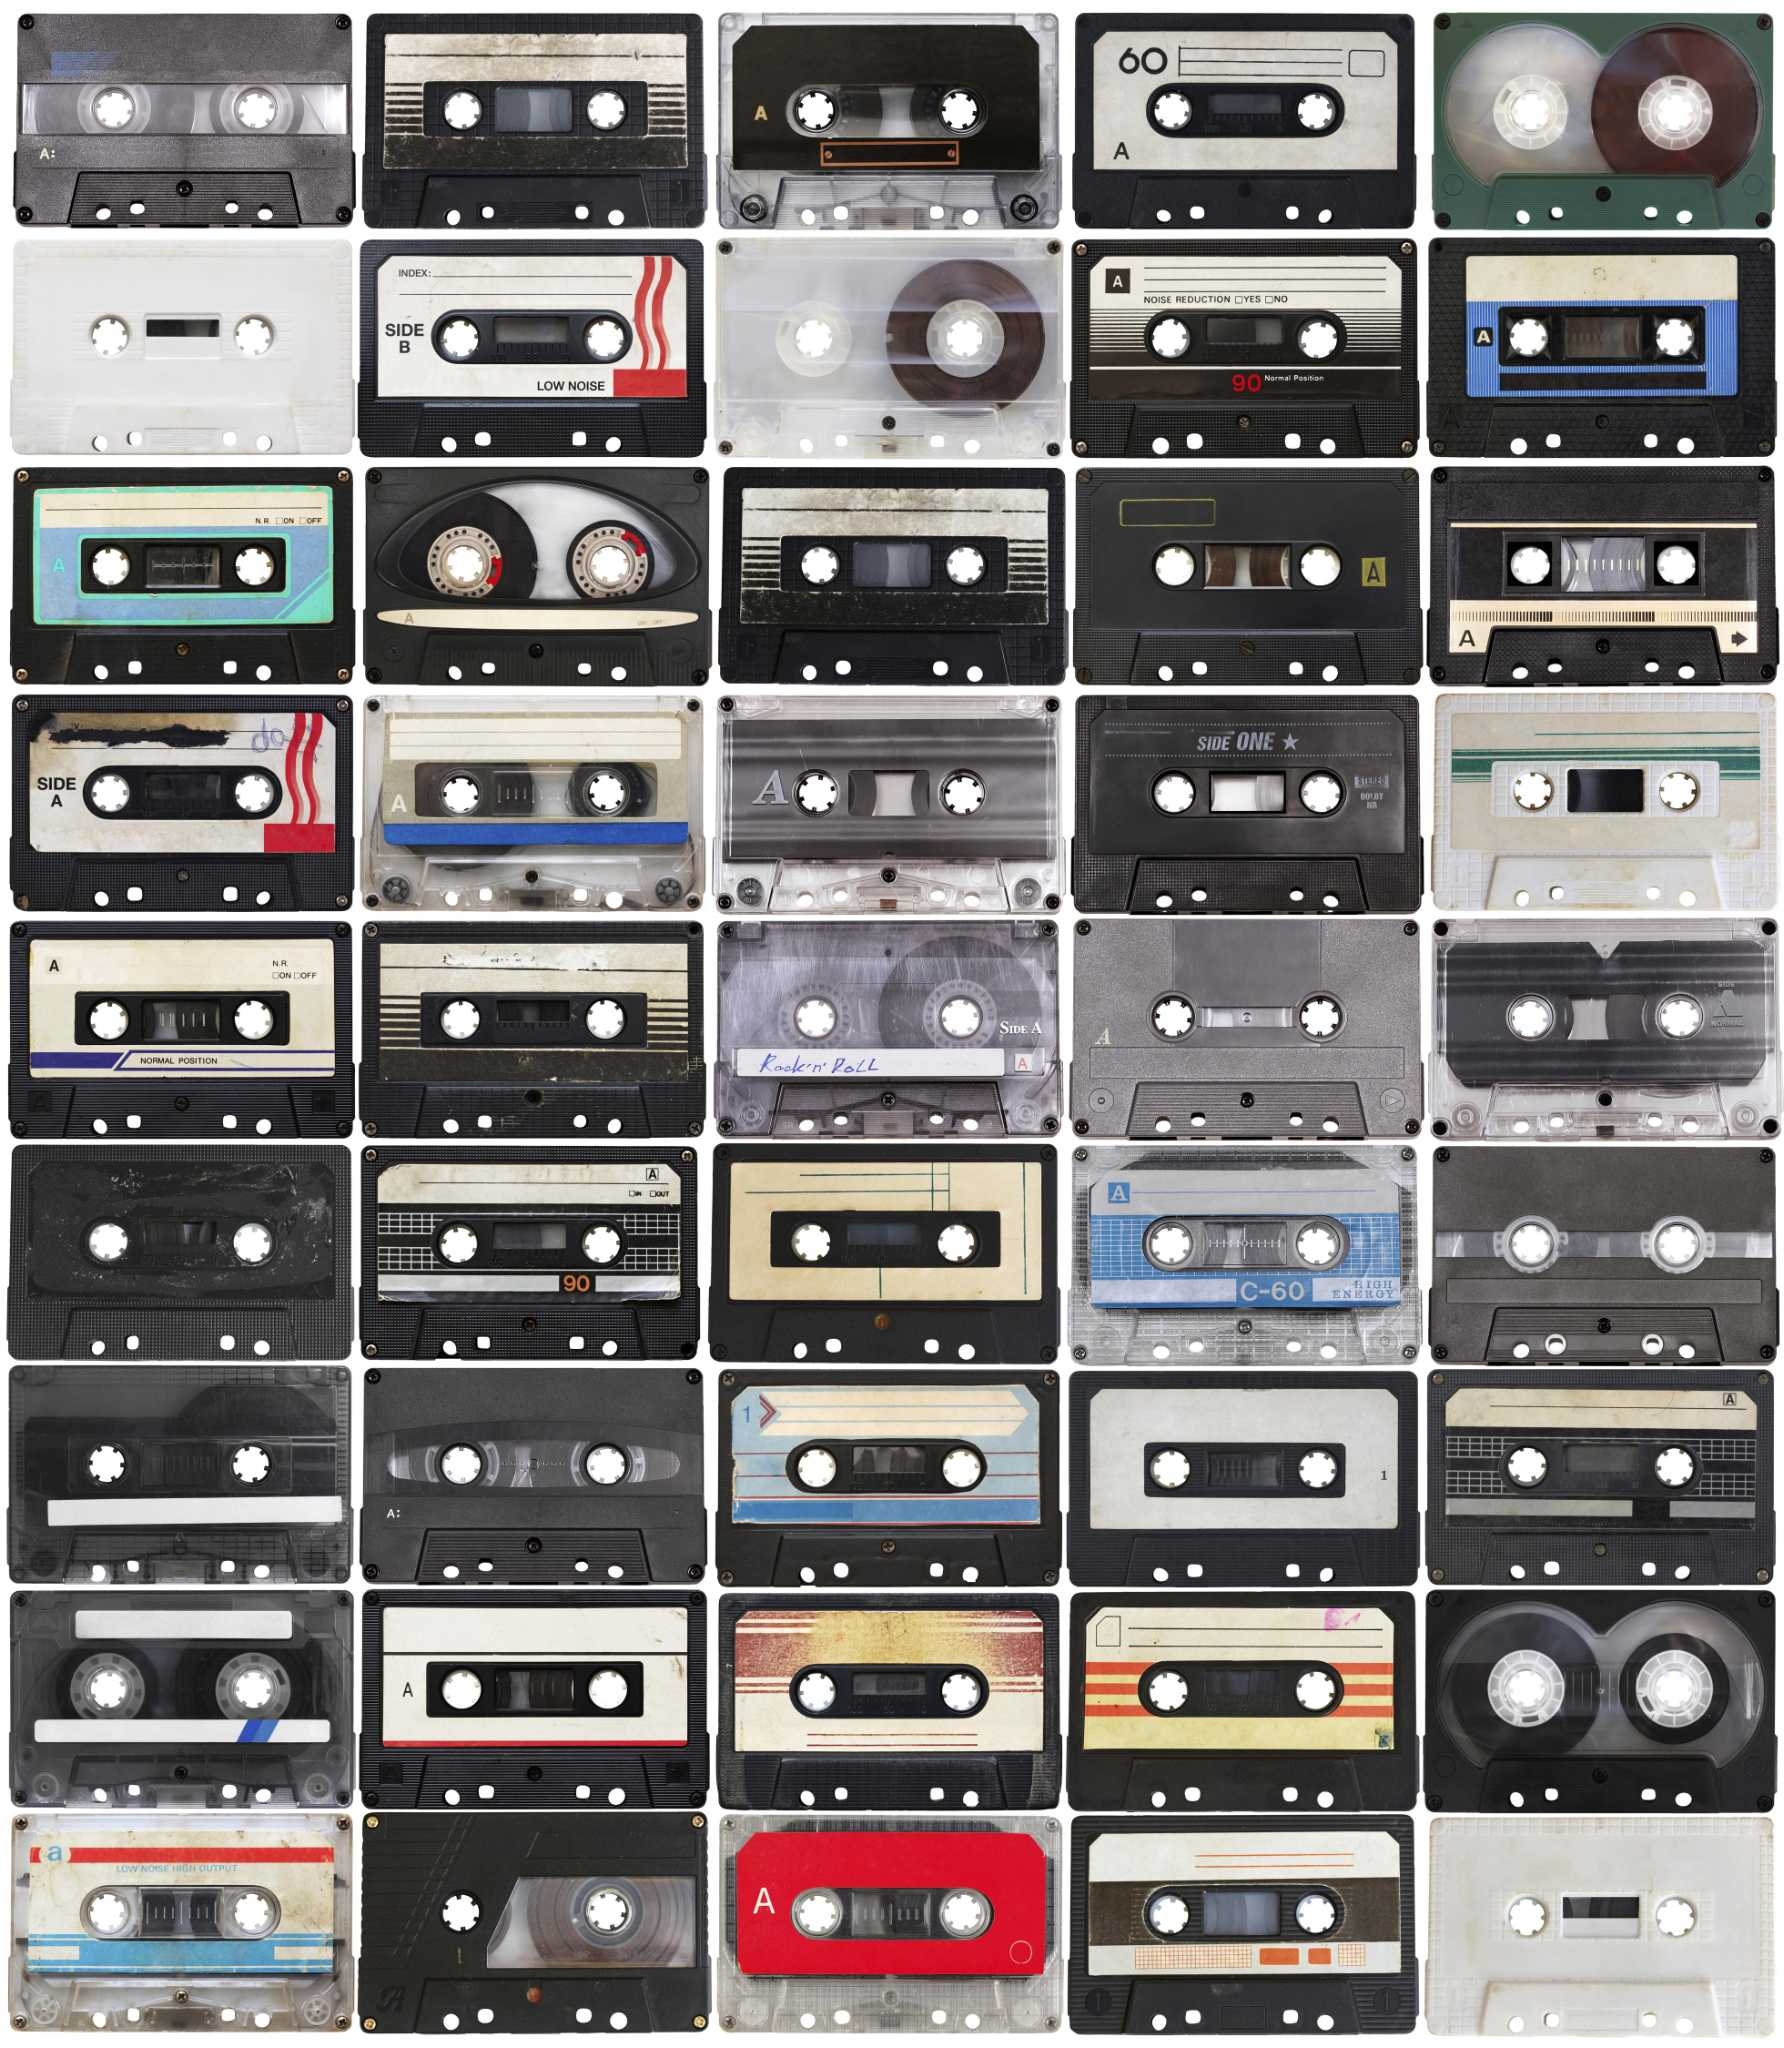 Kevin McKeever: A comeback tour of cassette tapes